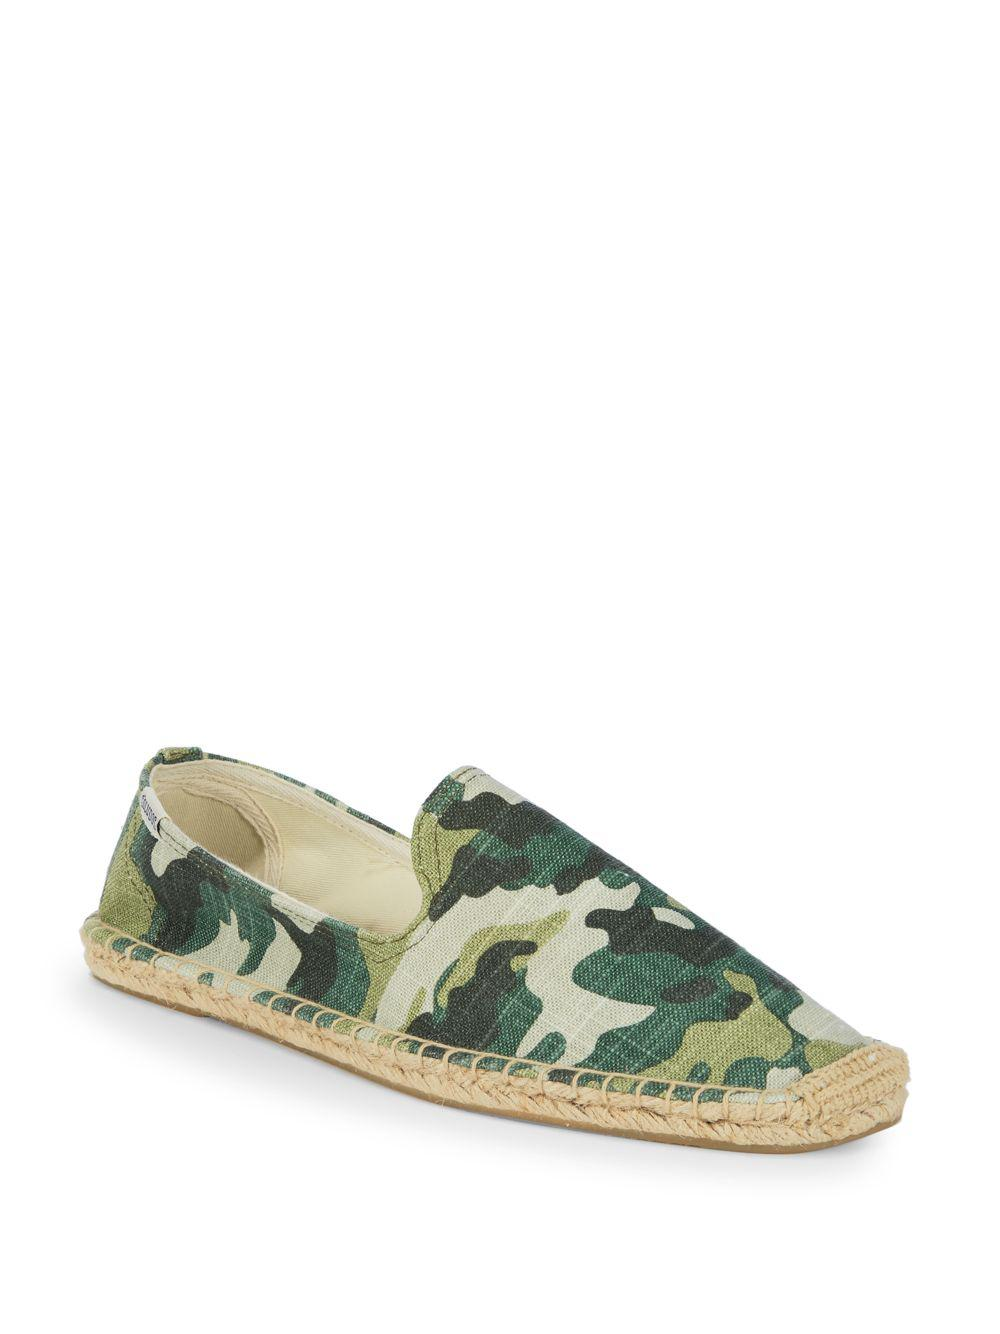 76607909f5398 Soludos Camouflage Smoking Espadrilles in Green - Lyst